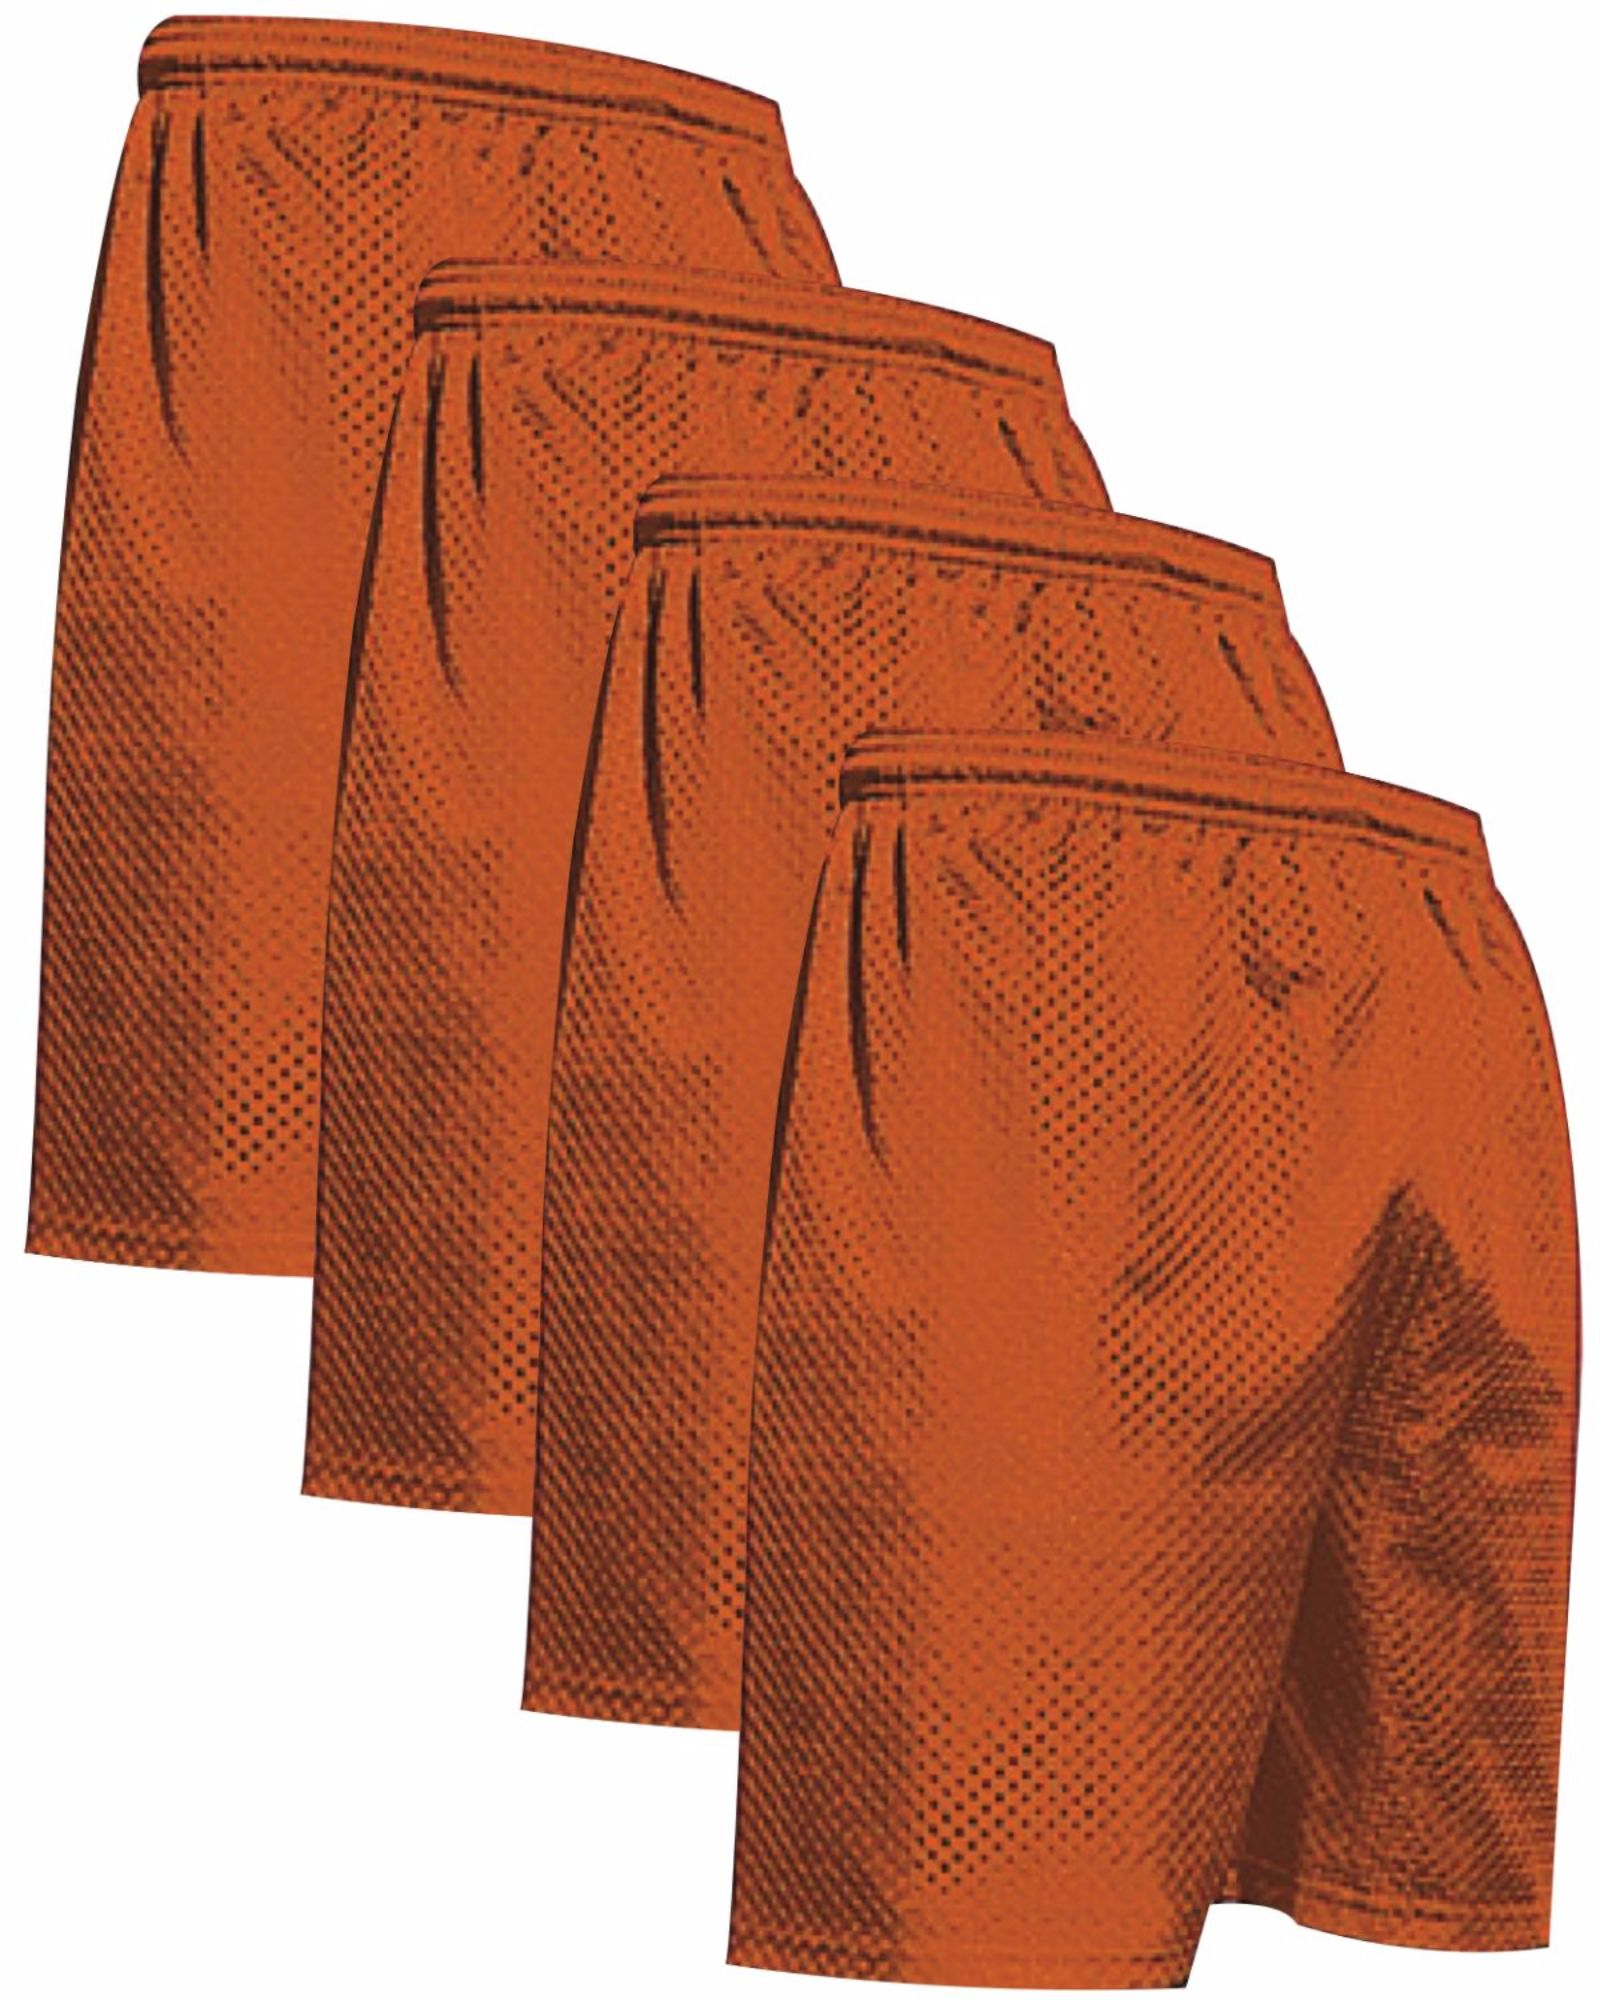 """VALUE PACK  > BUY 2 GET 2 FREE >  4 PACK > THE RAM BRAND > Men's  9"""" Performance Pro Mesh Gym Champ Shorts (XS-4XL) $10 S/H is on the 1st Pack only. In this Pack: (2XL)(4Orange)"""